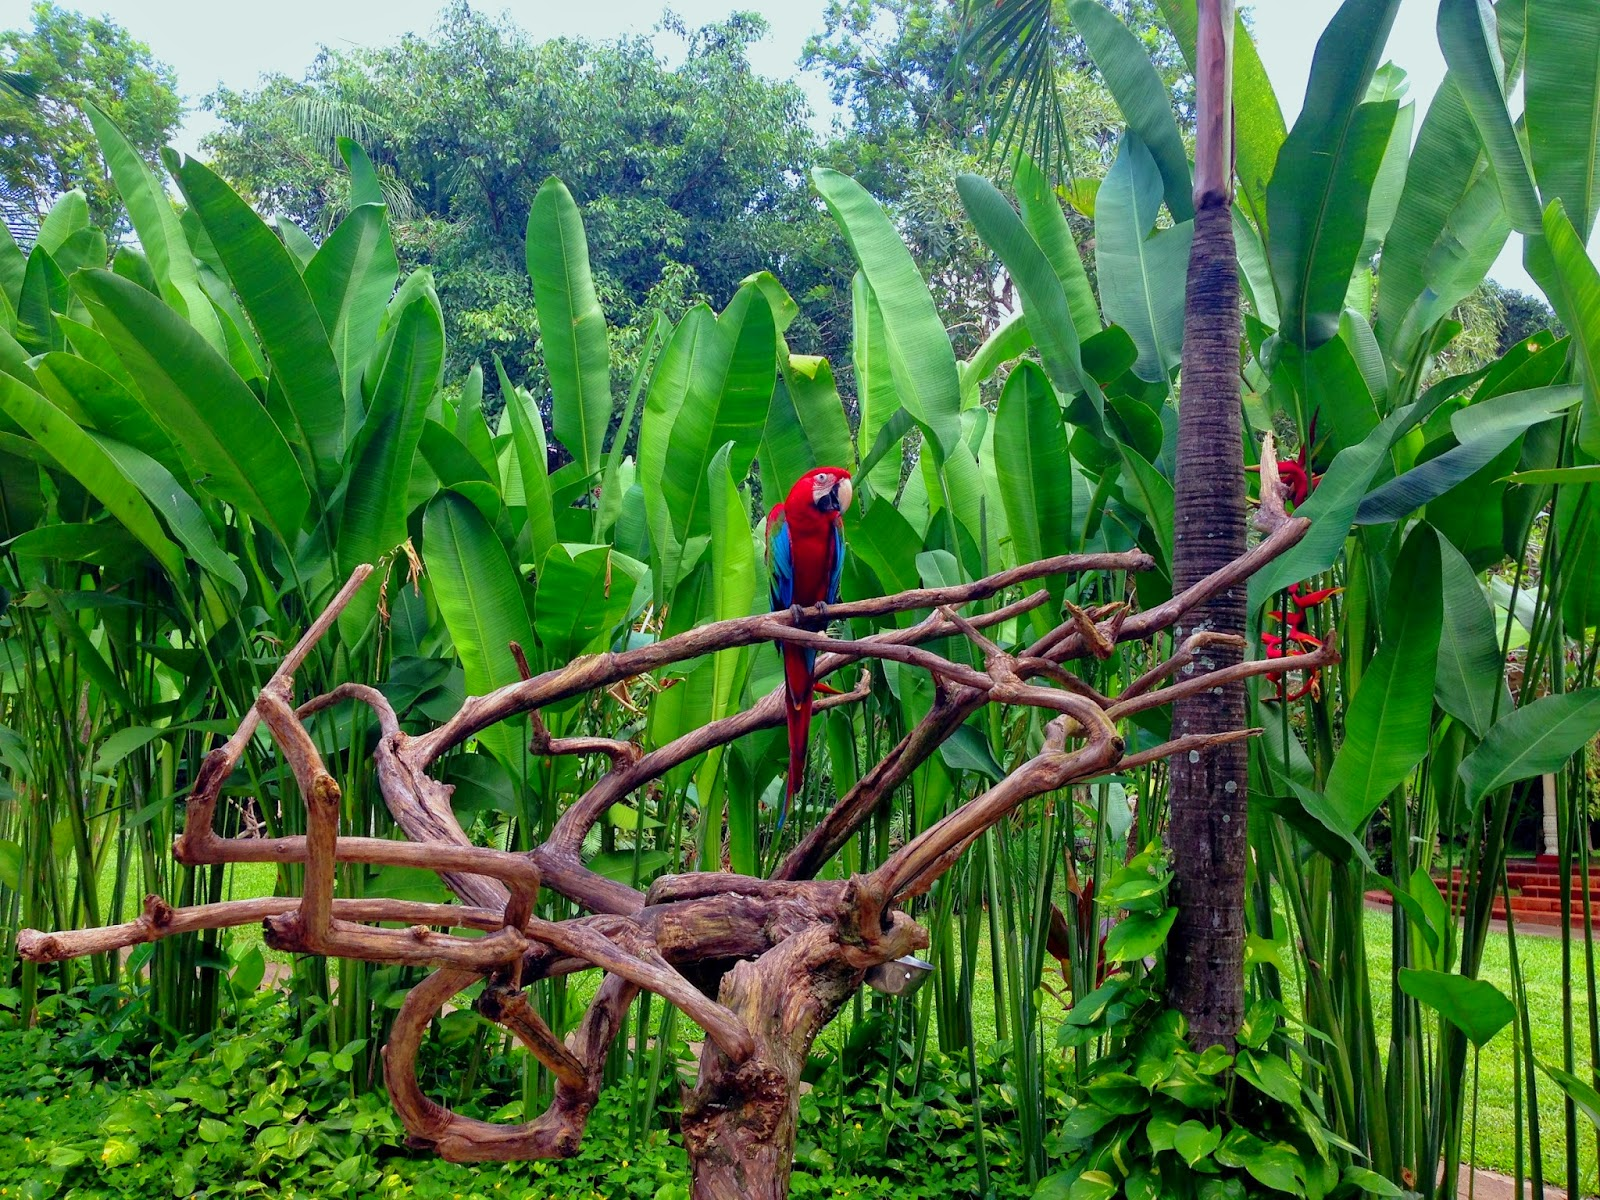 Bantall Living My Dream At Bali Bird Park Voucher Tiket Masuk Anak Wisata Is Located In Gianyar About 40 Minutes To The North From Kuta By Motorcycle So It Not Hot As Downtown Denpasar For